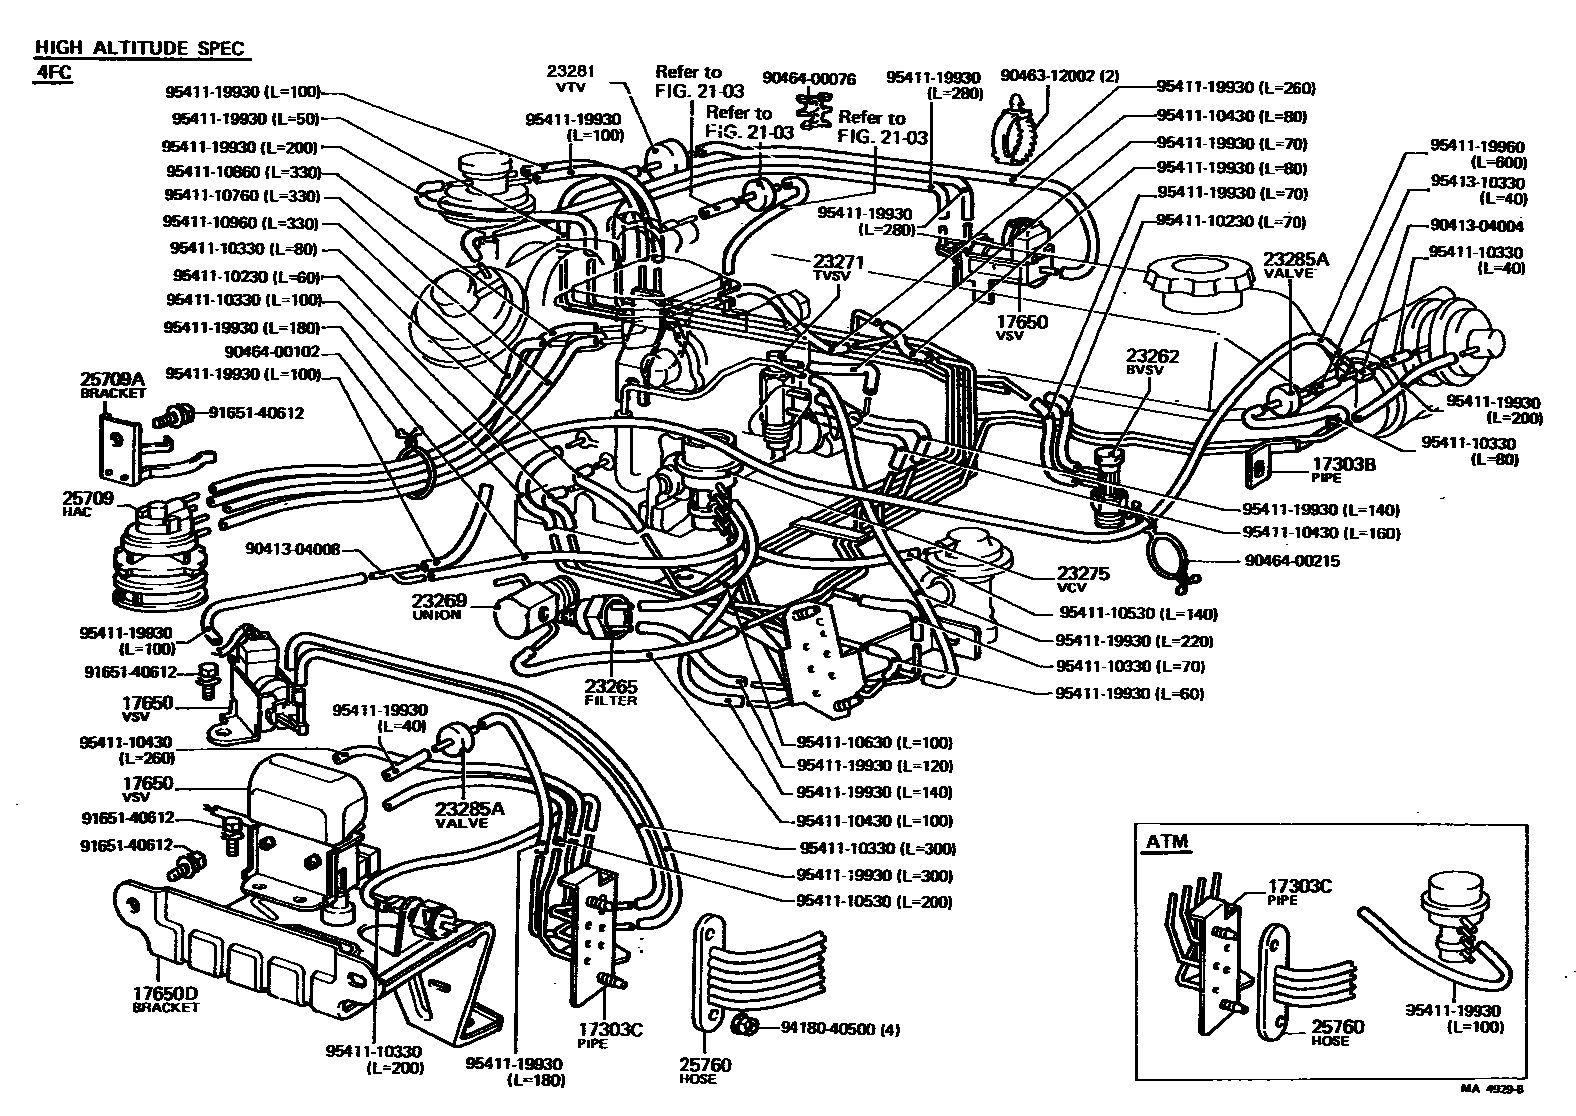 2012 toyota tacoma engine diagram - wiring diagram close-usage-b -  close-usage-b.agriturismoduemadonne.it  agriturismoduemadonne.it